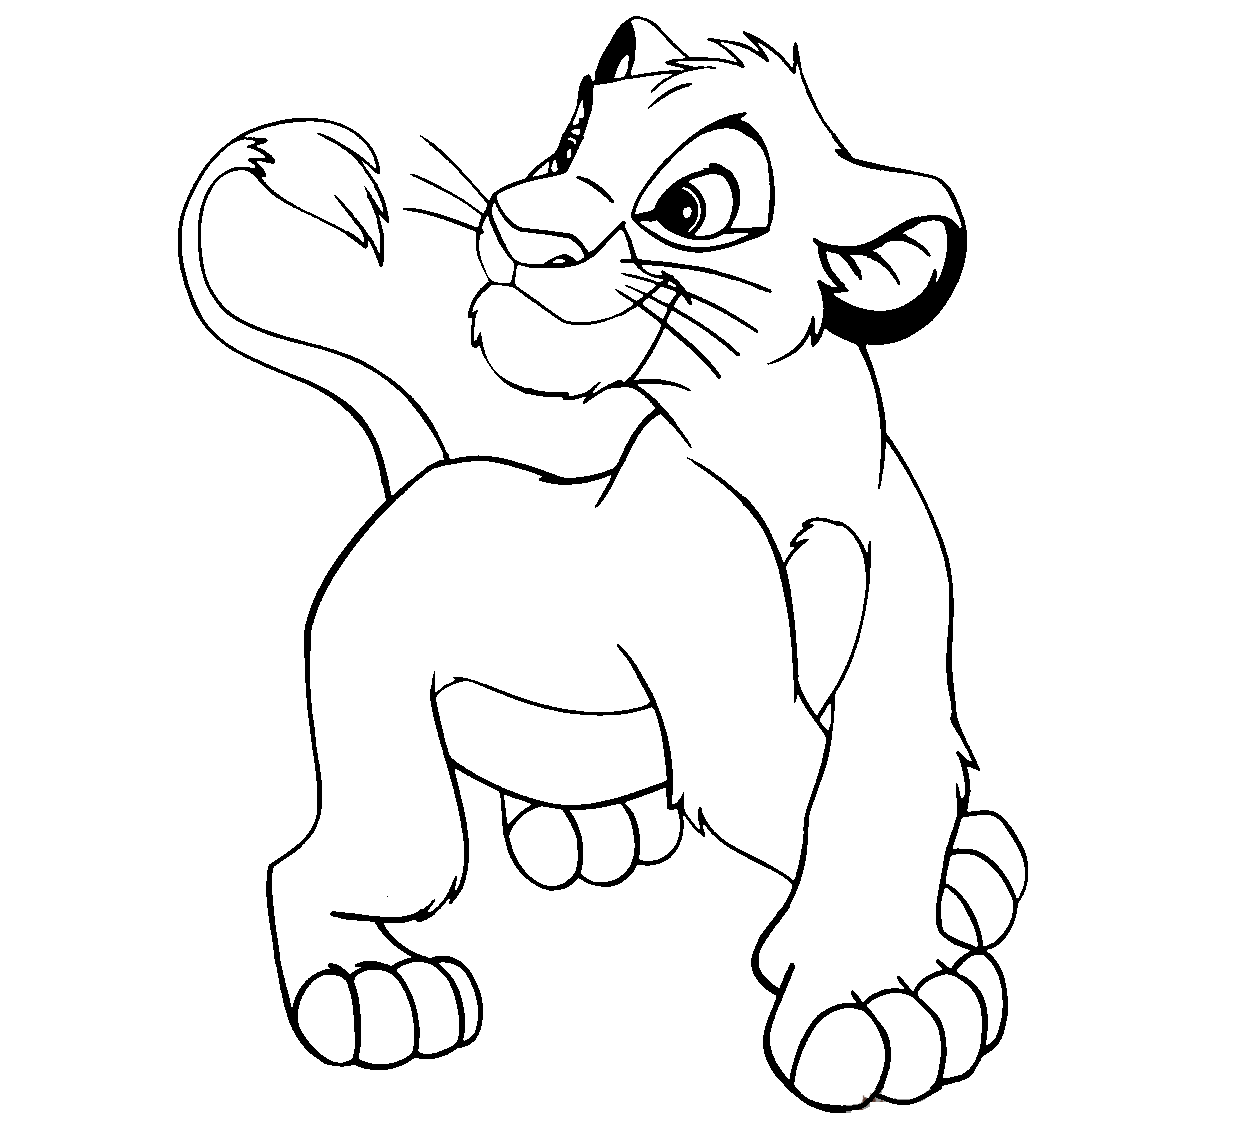 Disney Cartoon The Lion King For Kid Coloring Drawing Free